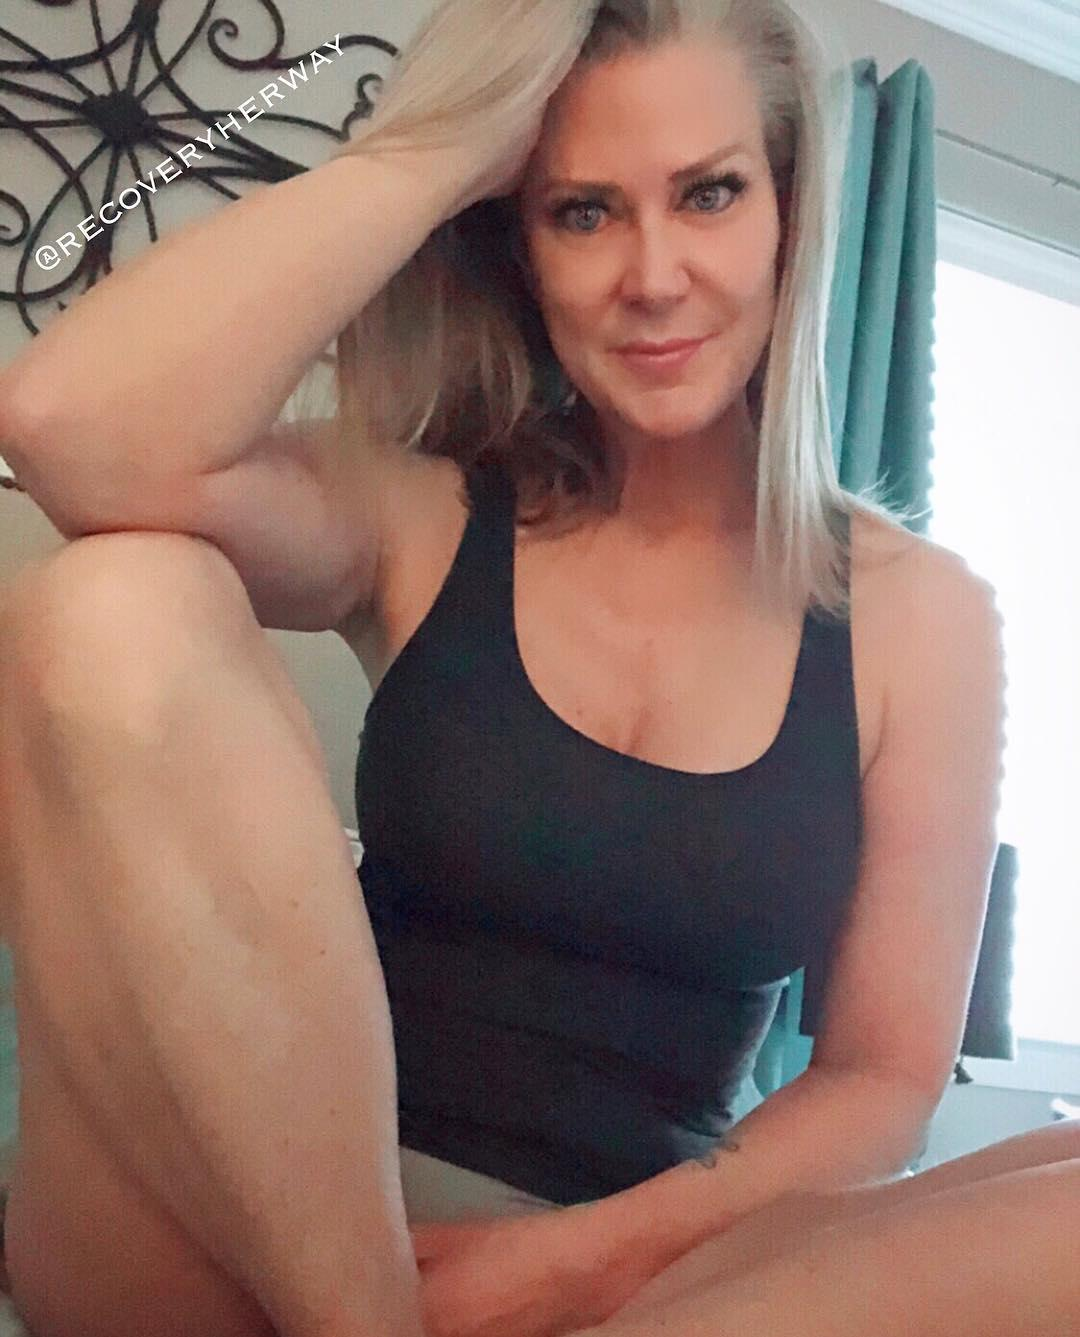 super cute single mom broadcasting selfies from the gym picture 3